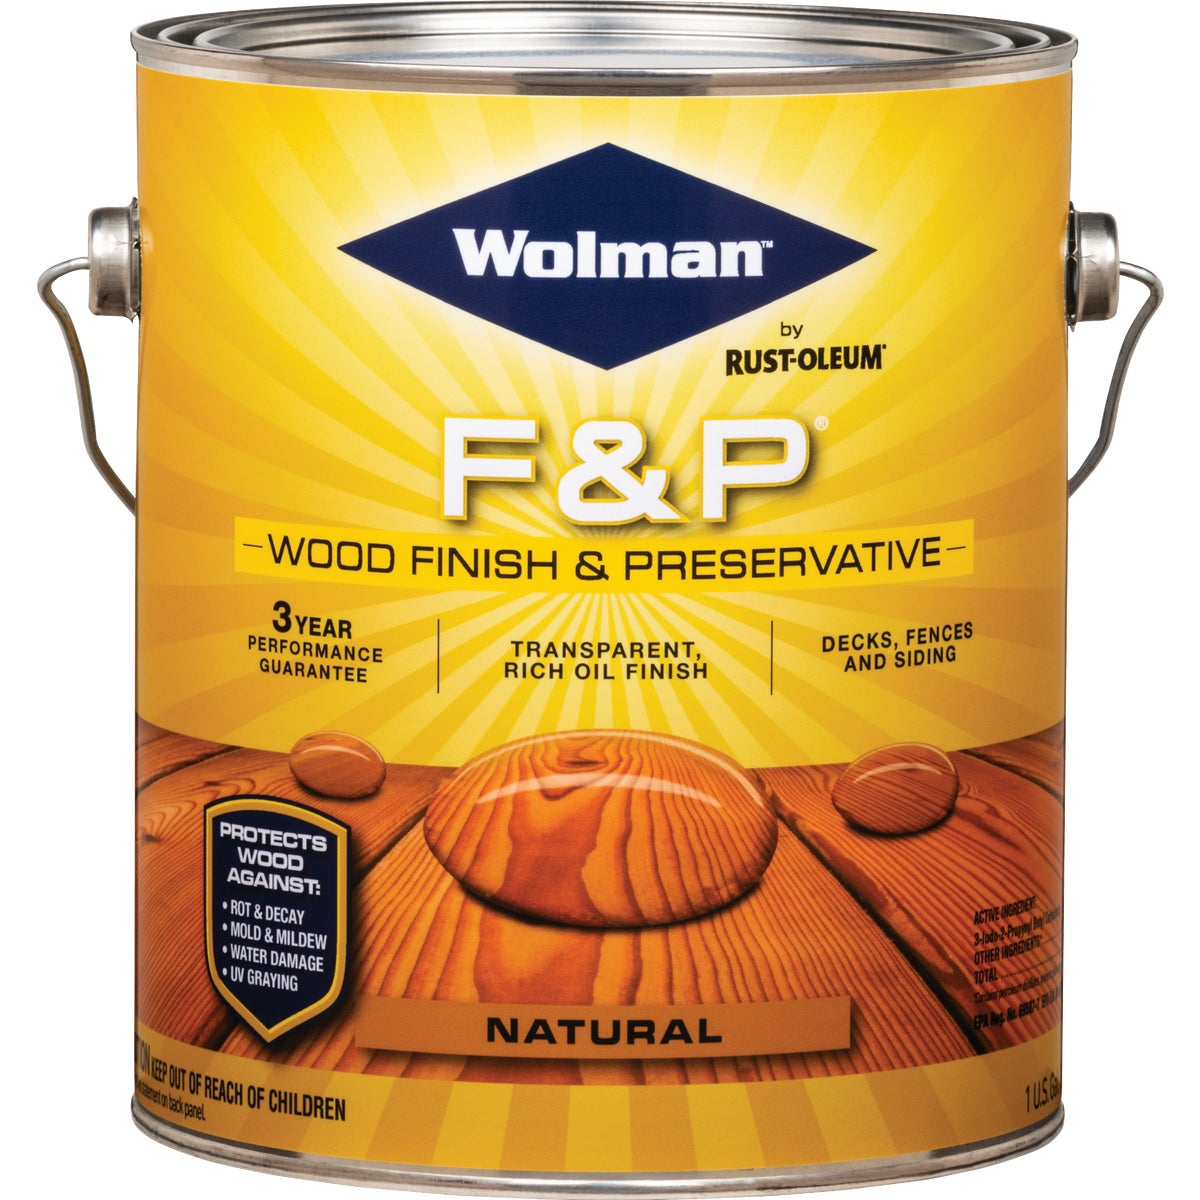 F&P NATURAL FINISH - 14396 by Rustoleum